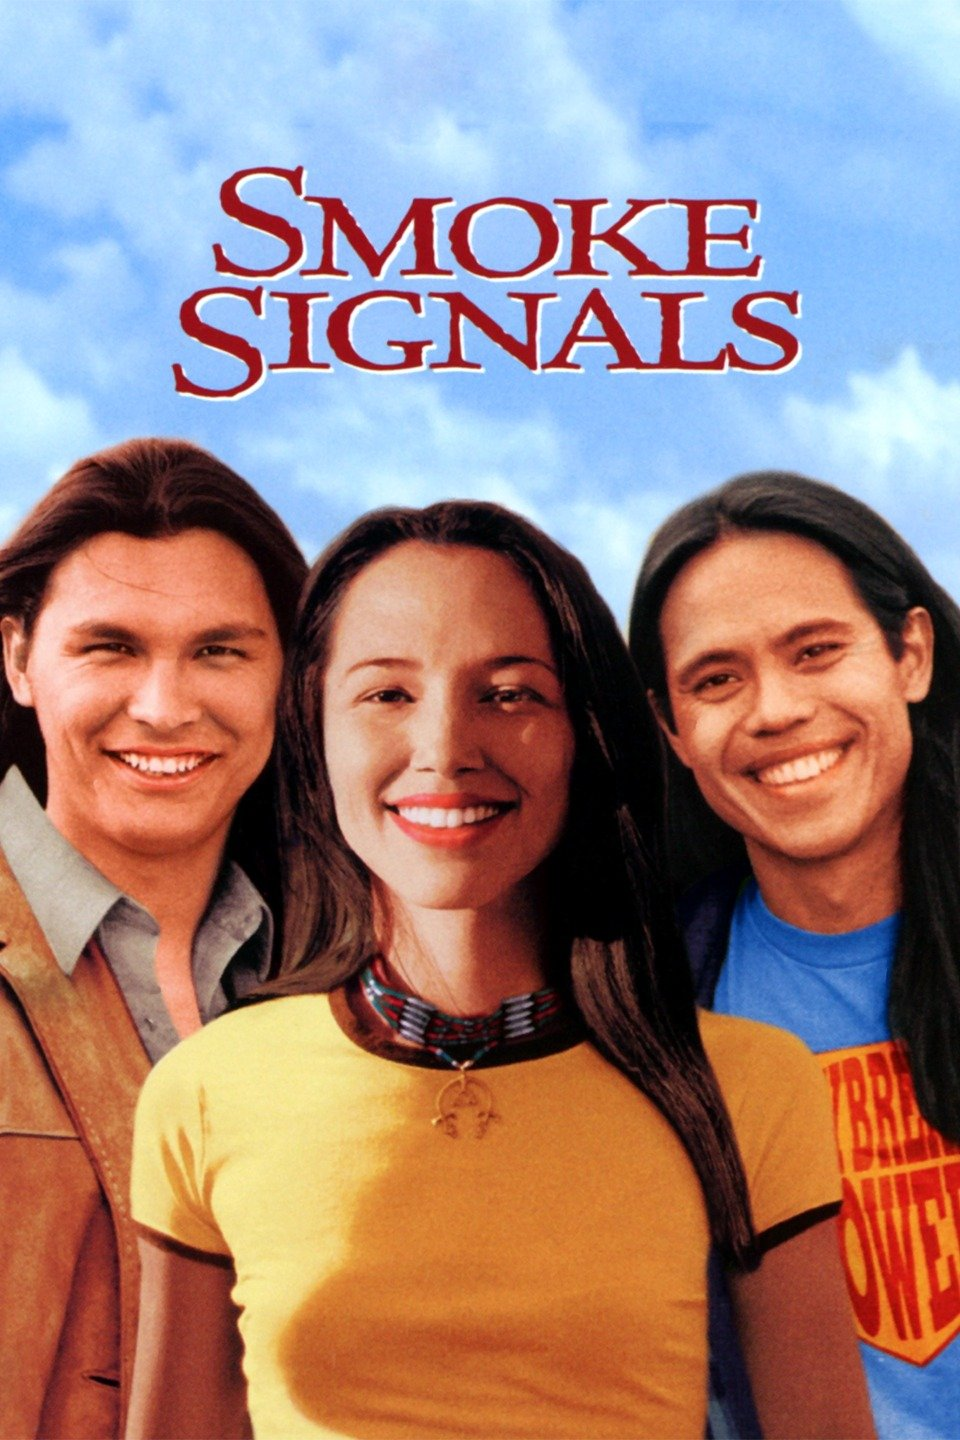 Image result for smoke signals movie